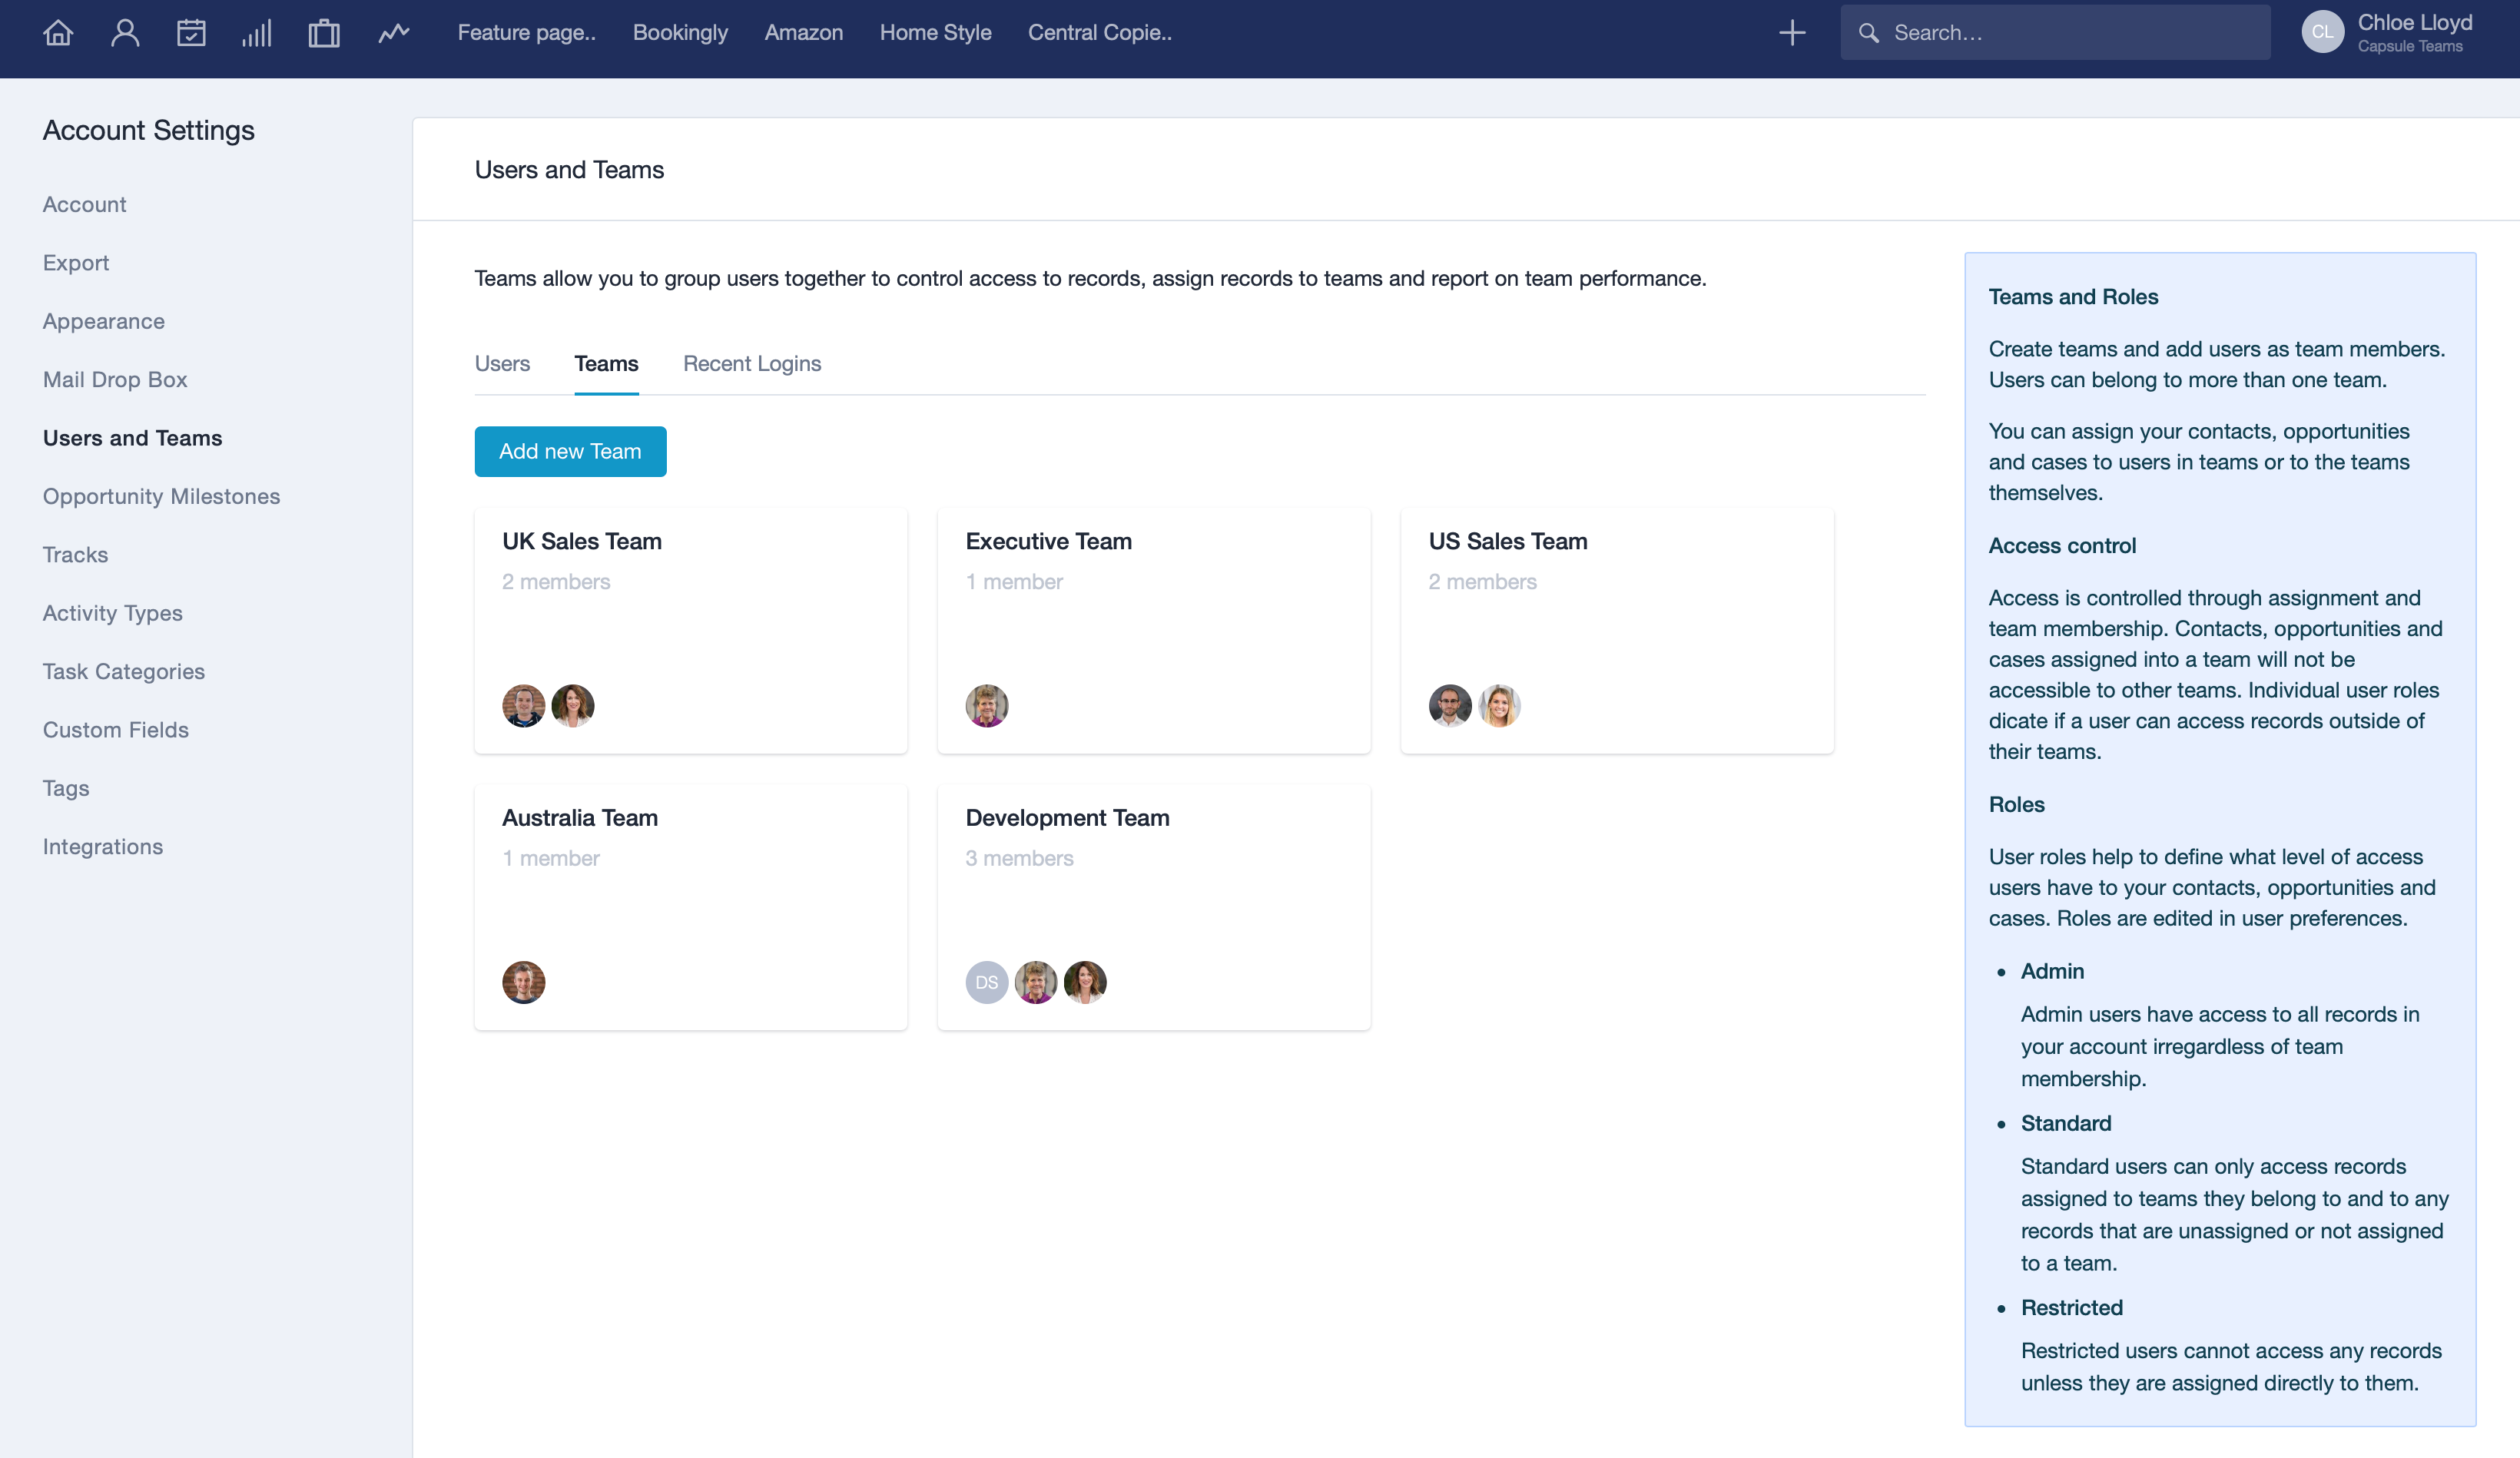 Organize users into Teams and control access through roles